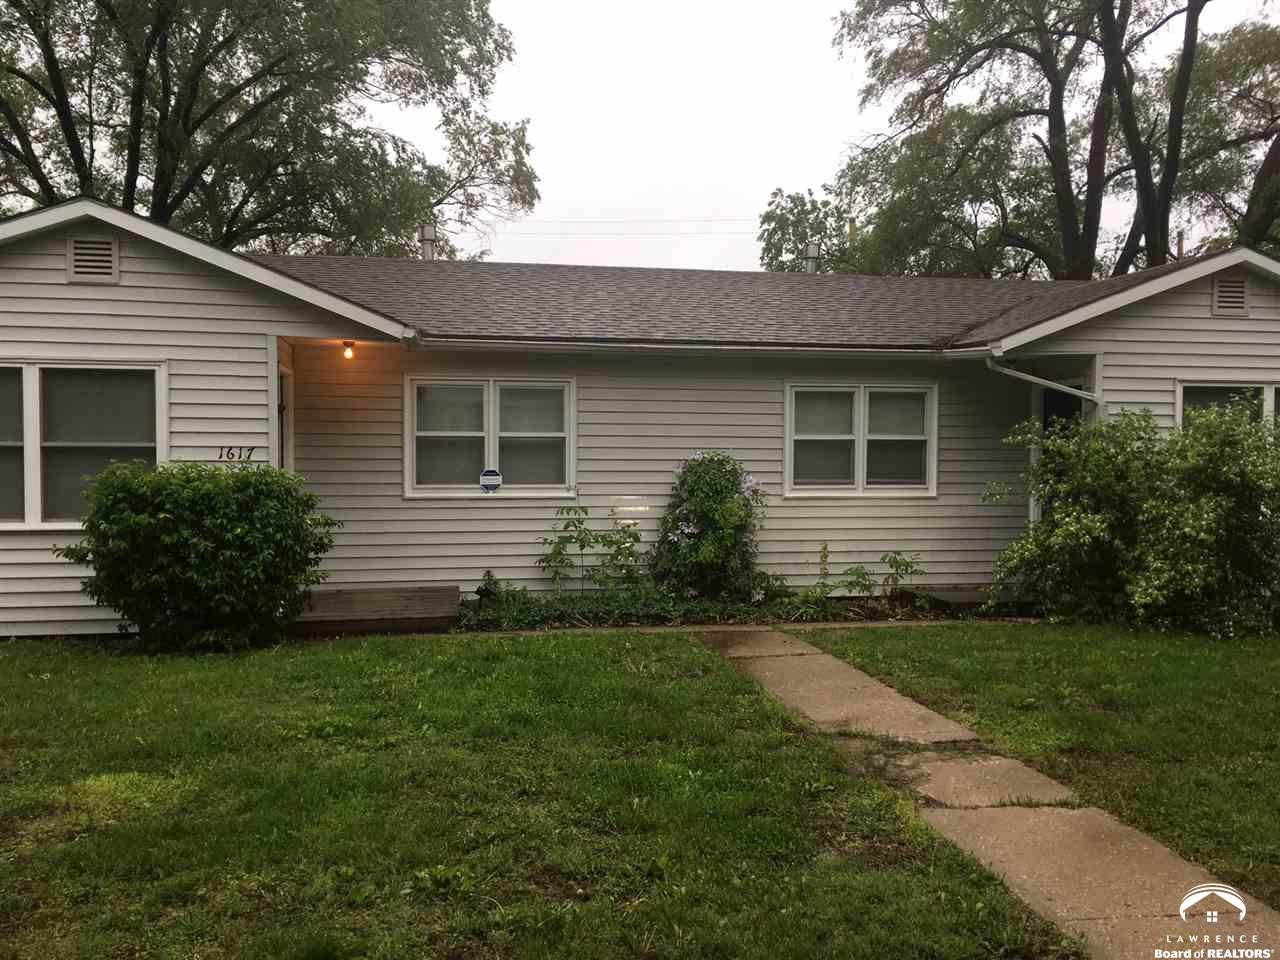 1617 W 22nd Terrace, Lawrence, KS 66046 2 Bedroom Apartment For Rent For  $700/month   Zumper